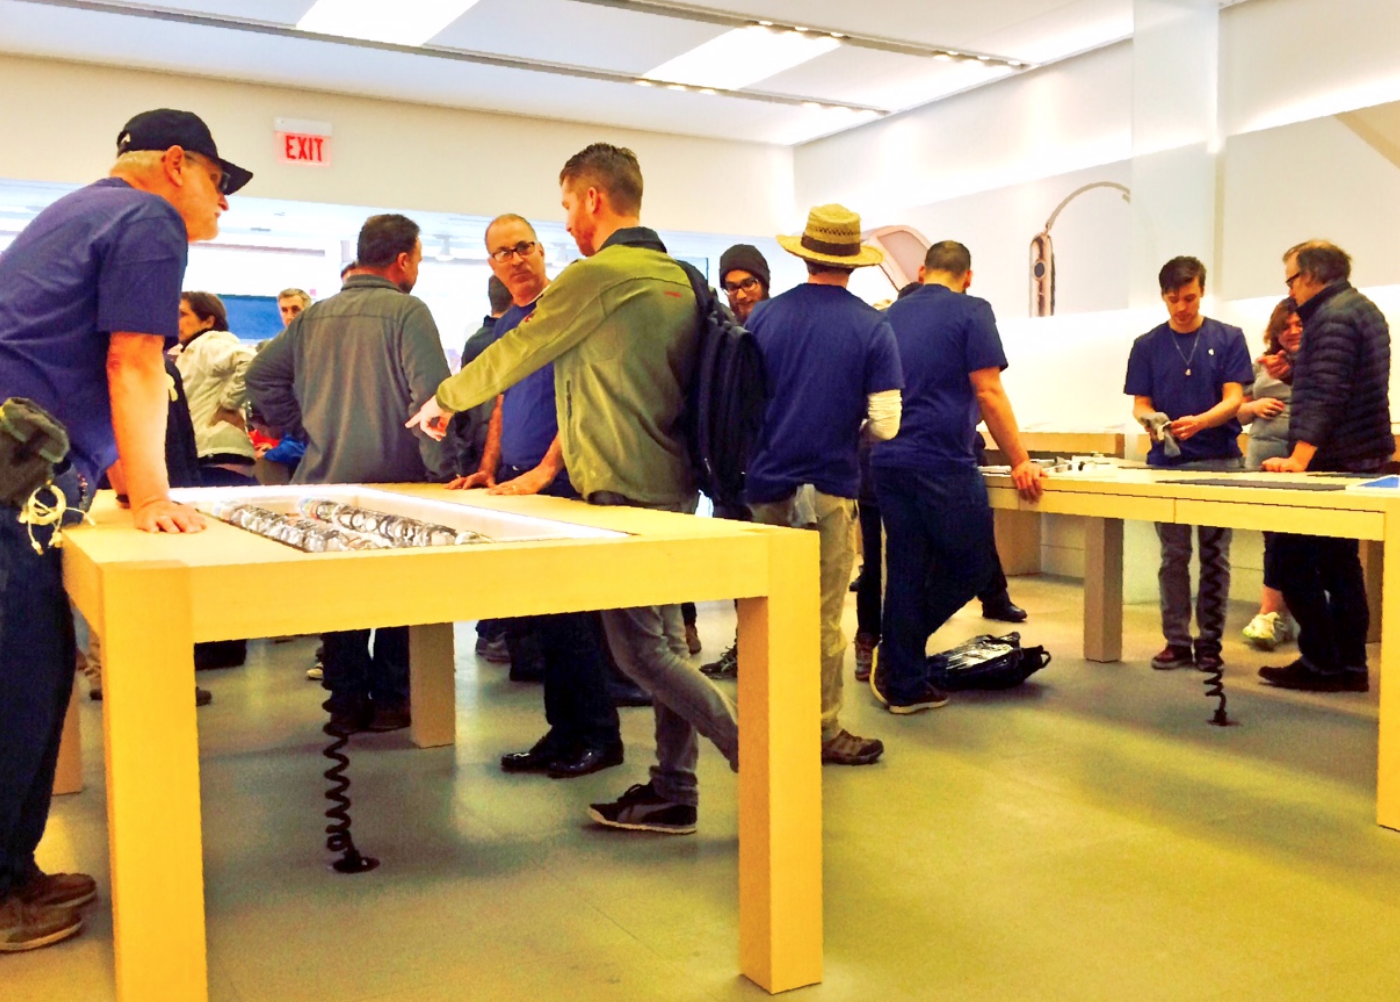 Apple Watch display table on left with try-on and demo table on the right. Additional try-on and demo spotswere located alongside each wall.